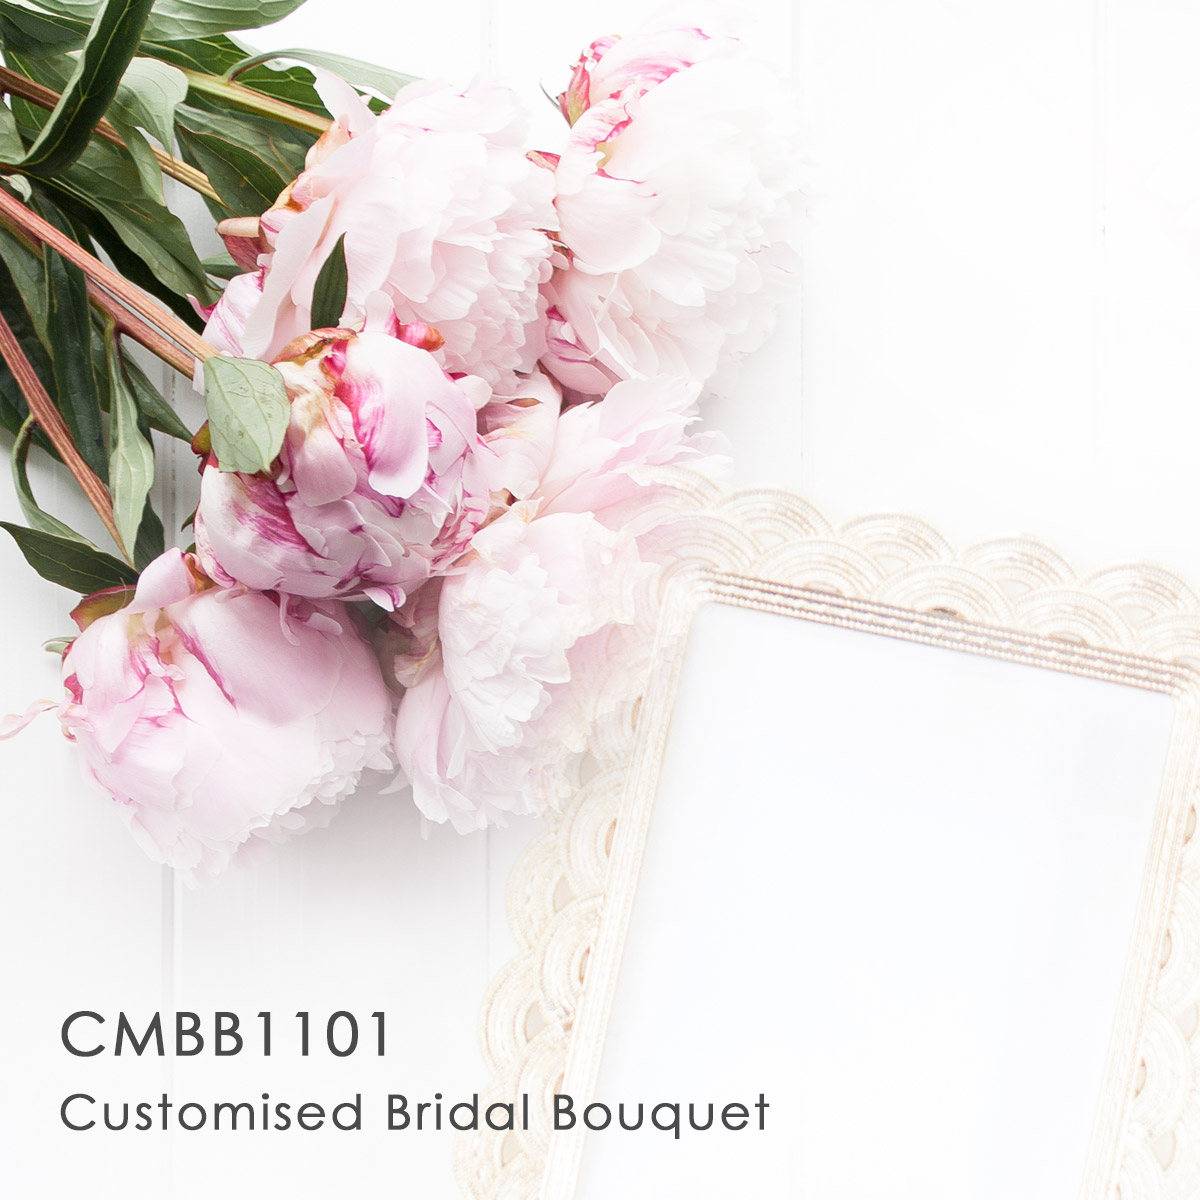 CMBB1101_Customised-Bridal-Bouquet_1200